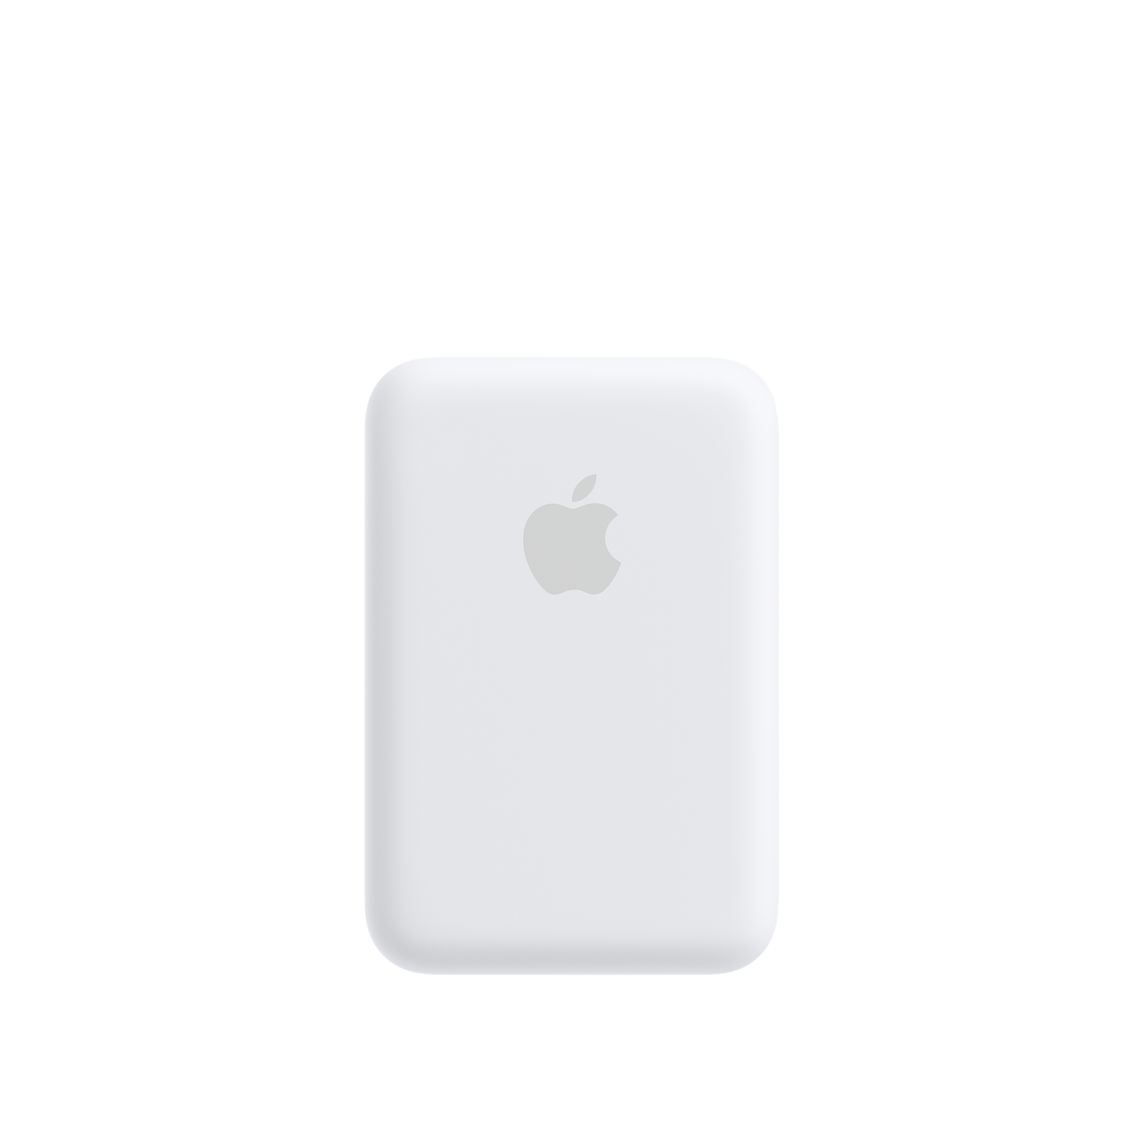 MagSafe Battery Pack front